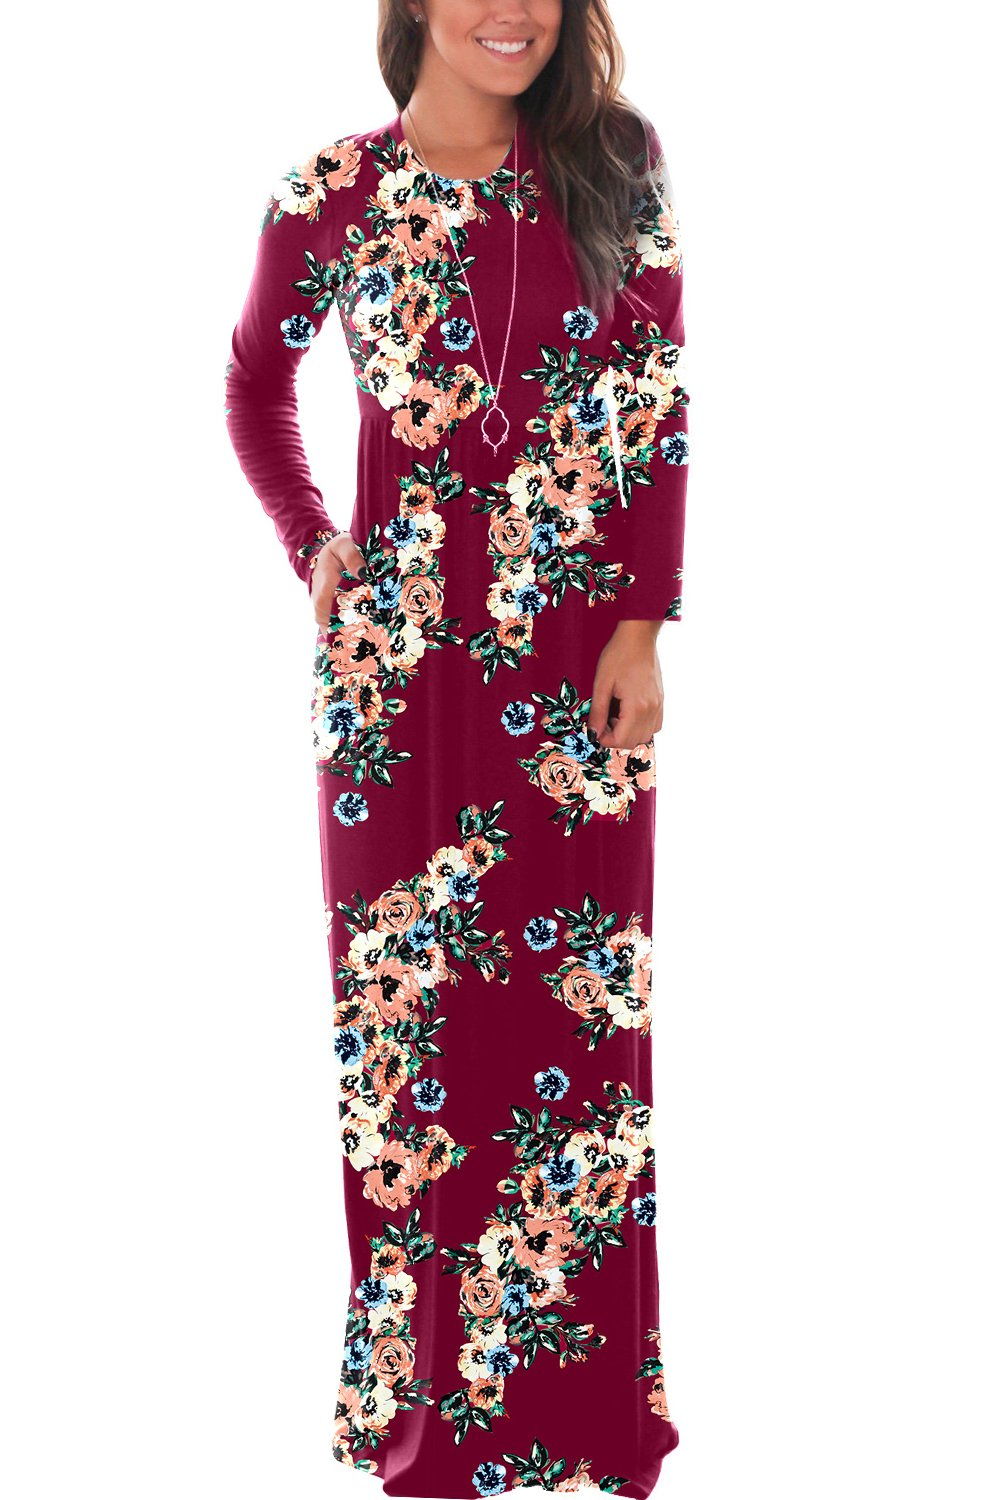 DawnRaid Swing Maxi Dresses Long Sleeve Long Casual Dresses for Women Full Length Floral Dress